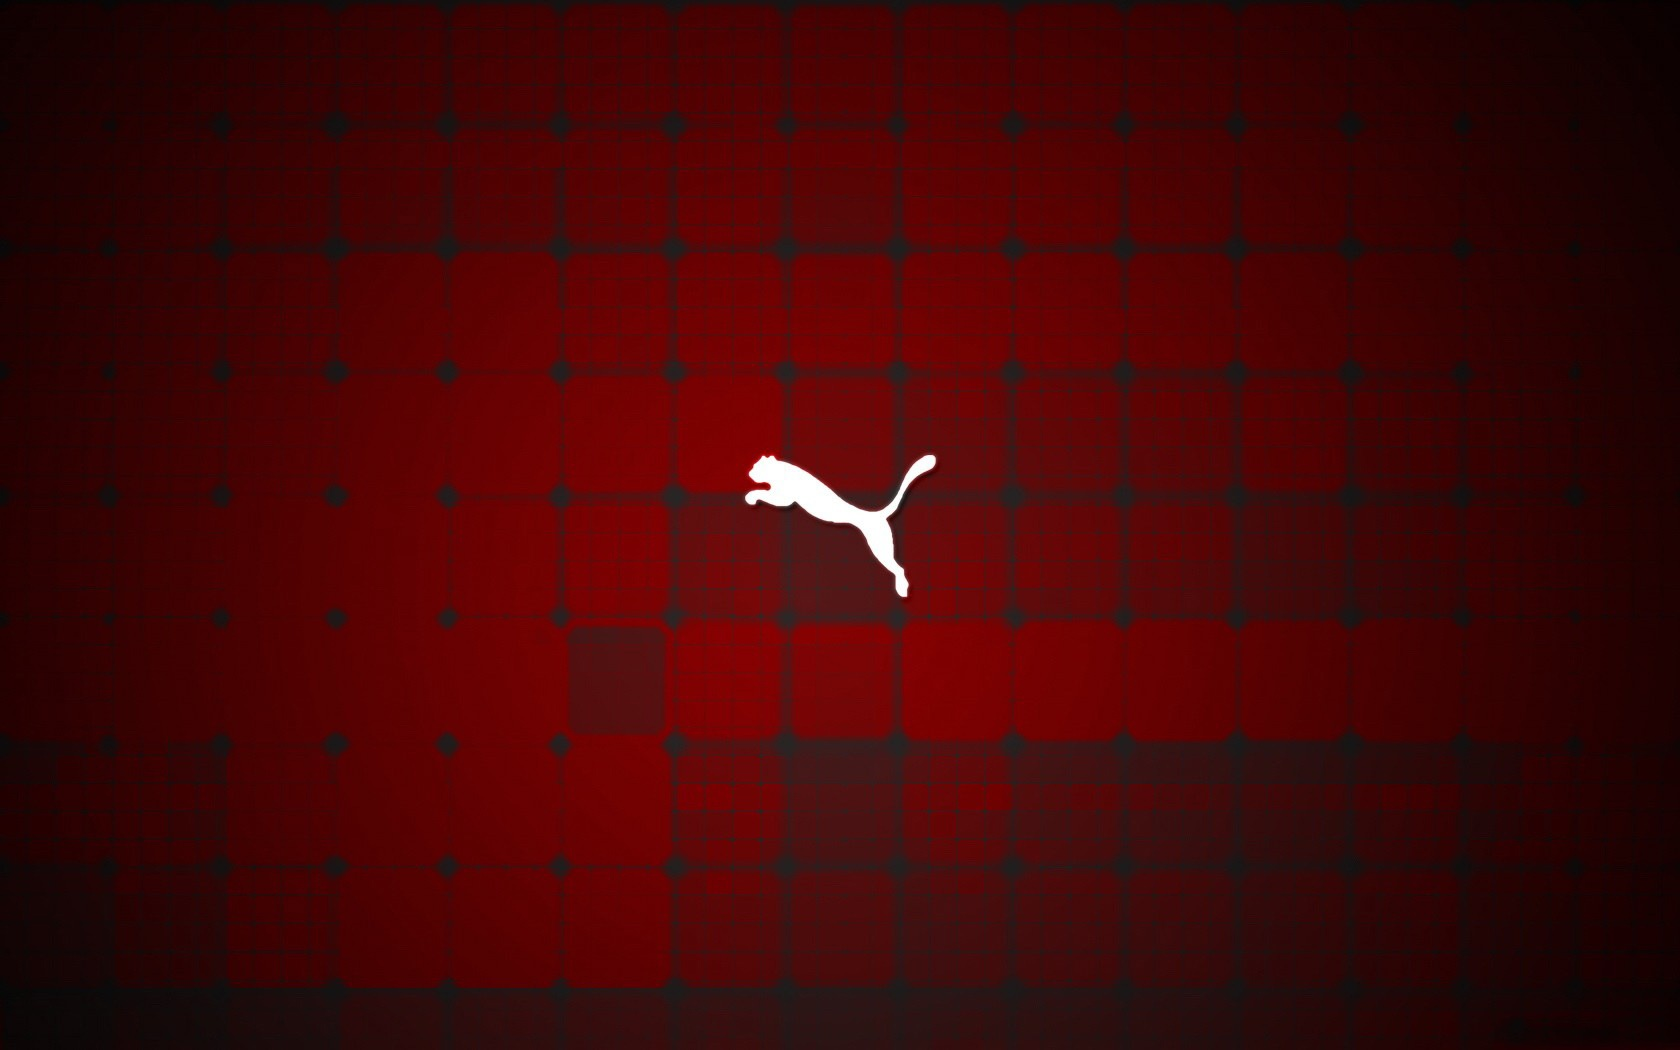 White Puma Logo Red Background HD Wallpaper Image For Your 1680x1050